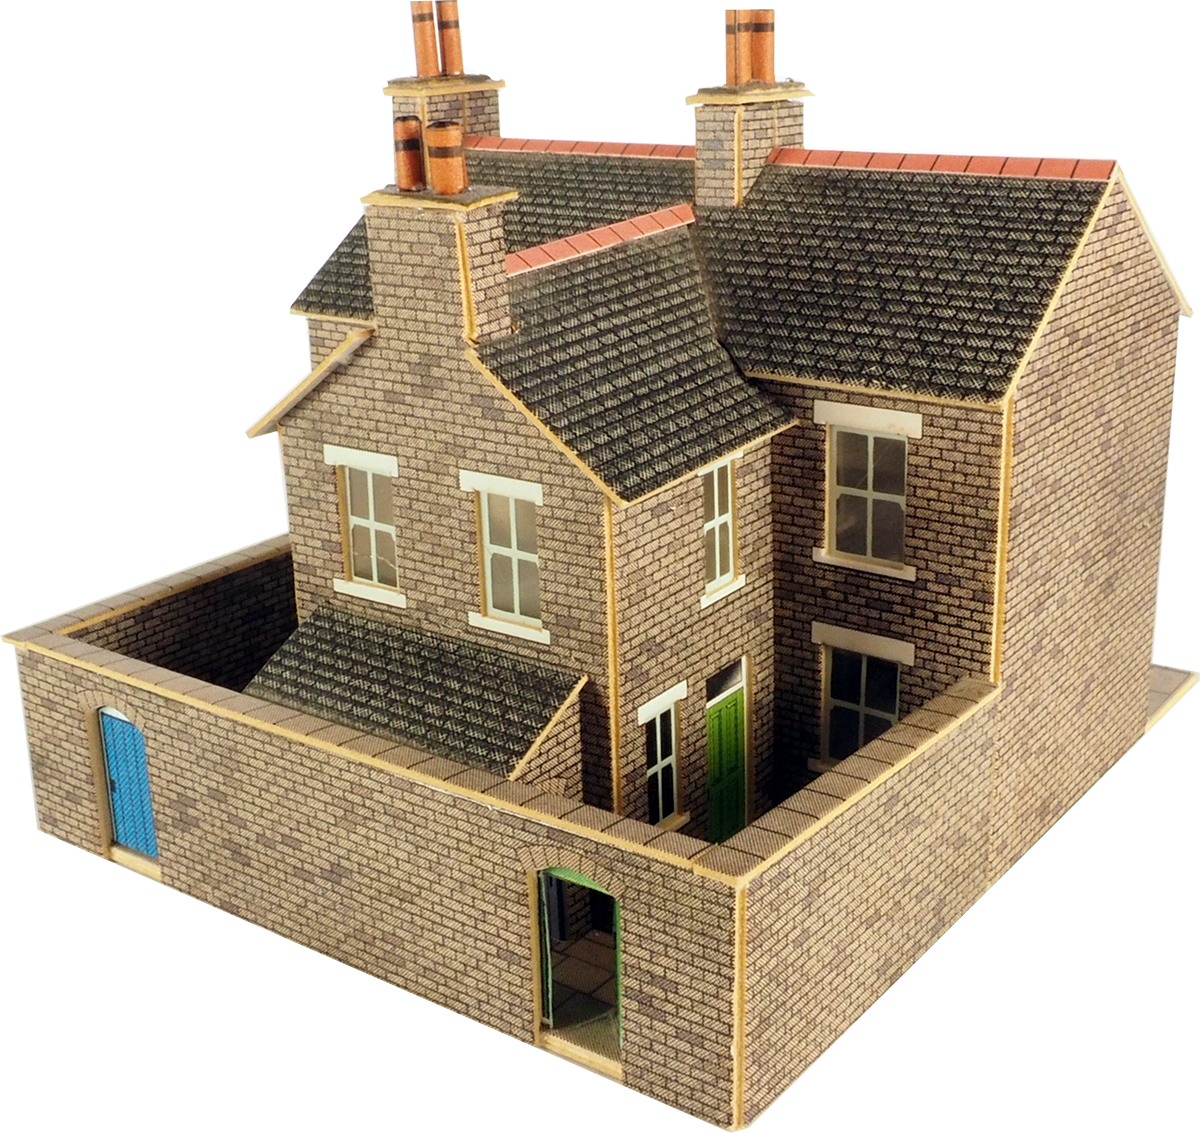 PN104 N Scale Terrace Houses in Stone | themodeltraincentre on n scale construction, scale model house plans, n scale furniture, n scale tools, 1/24 scale house plans, n scale wallpaper, n scale design, g scale house plans, n scale concrete, n scale garden, n scale landscape, n scale blueprints, n scale architect, post-war house plans, vintage house plans, n scale building materials, n scale signs, paper model house plans, n scale lighting, n scale magazines,